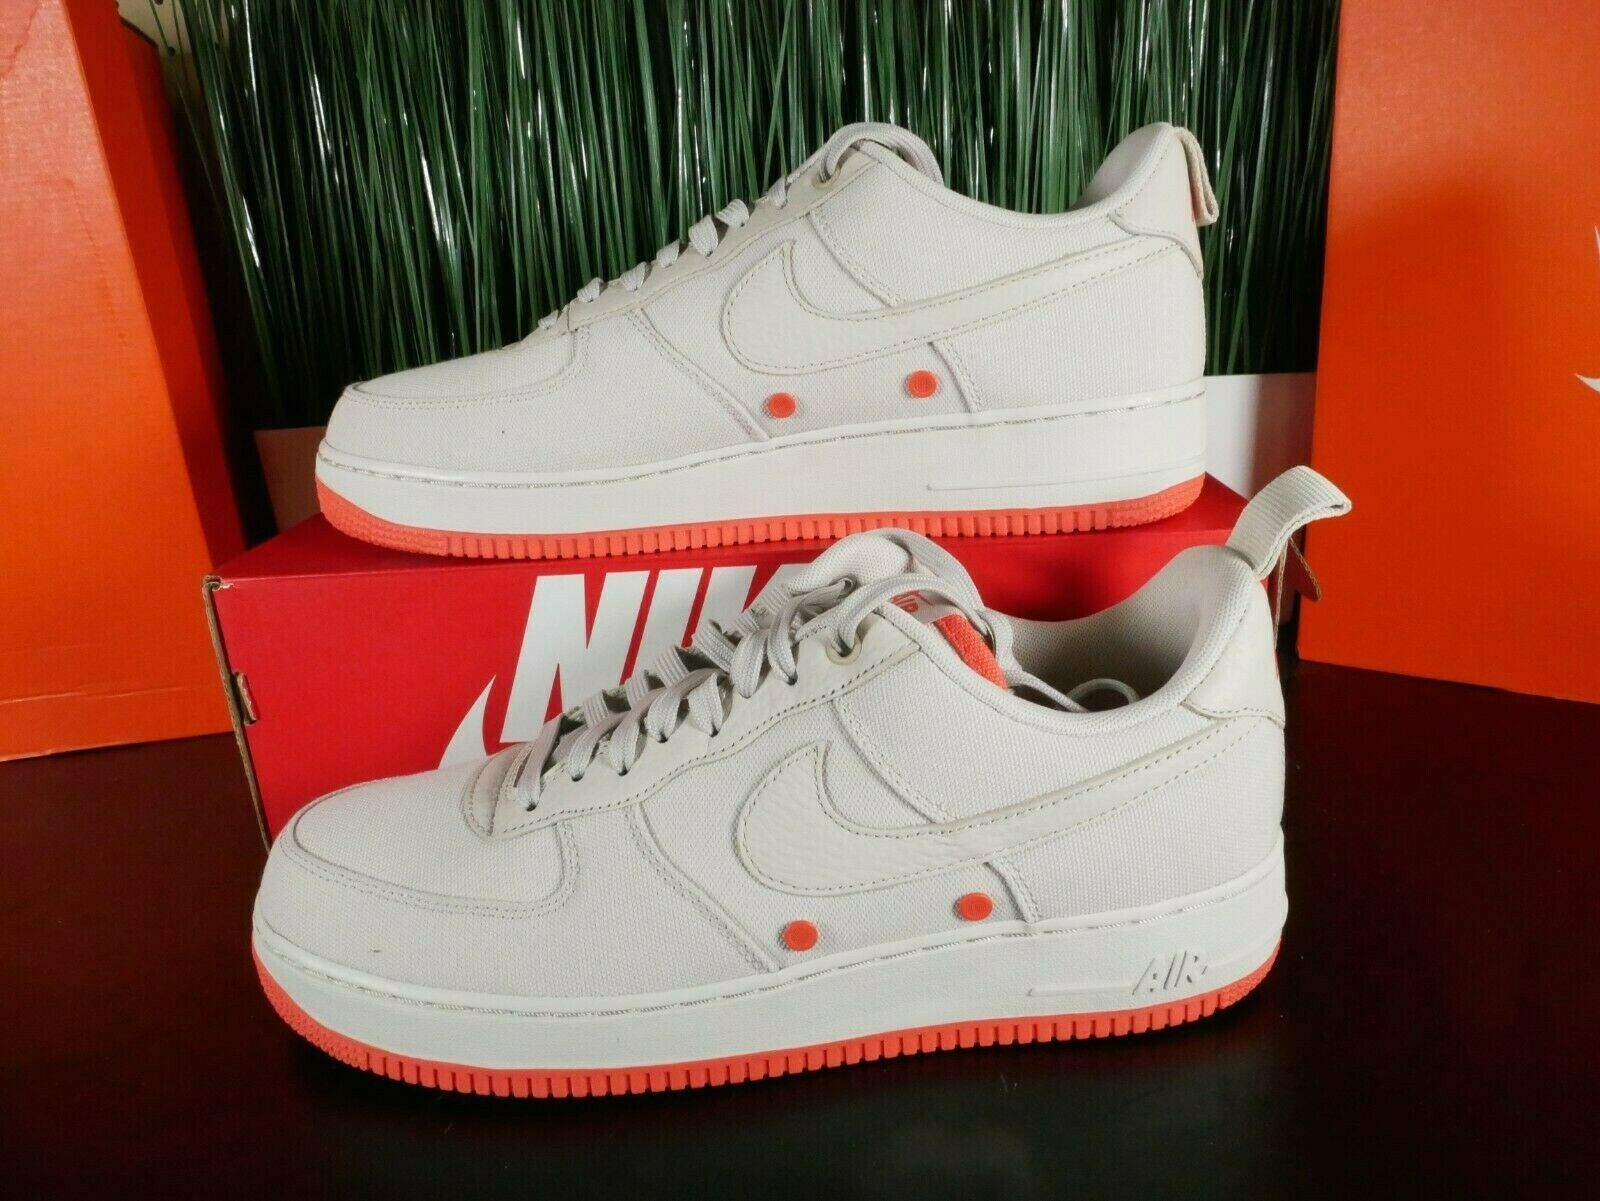 Nike Air Force 1 '07 Low Canvas Desert Sand Mens Shoes 579927 001 Size 12